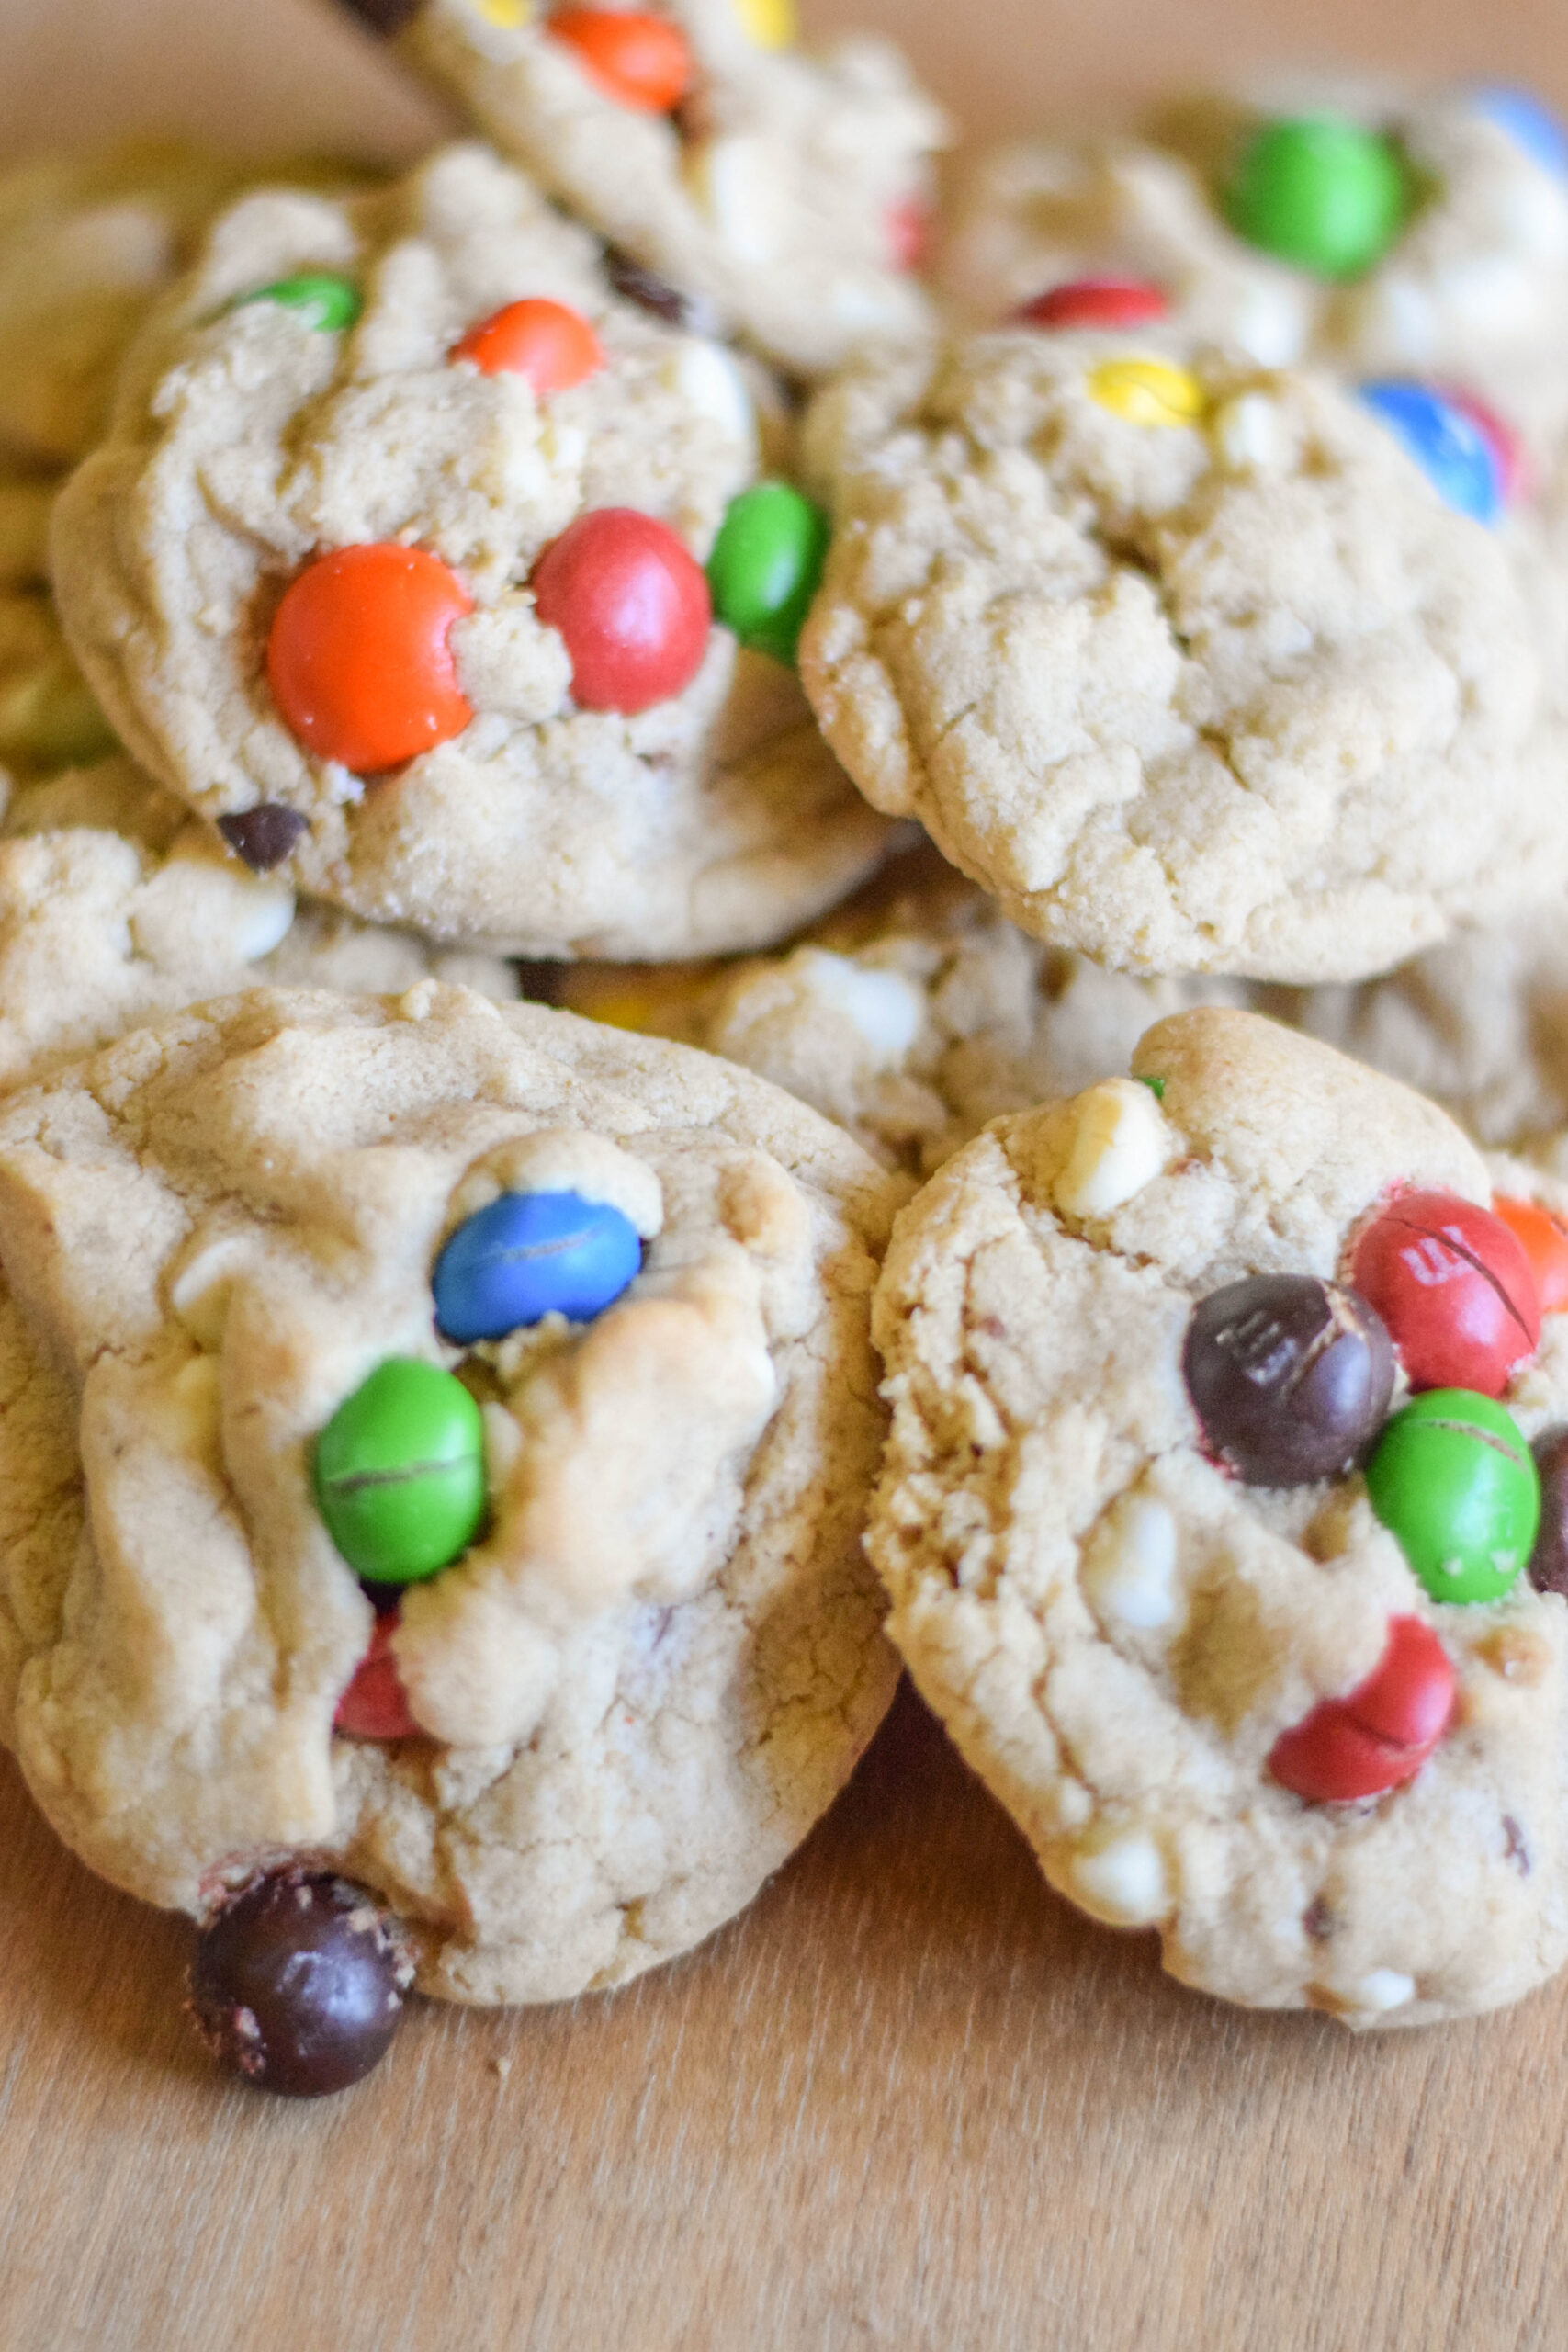 Kitchen Sink Cookies with Peanut Butter M&Ms